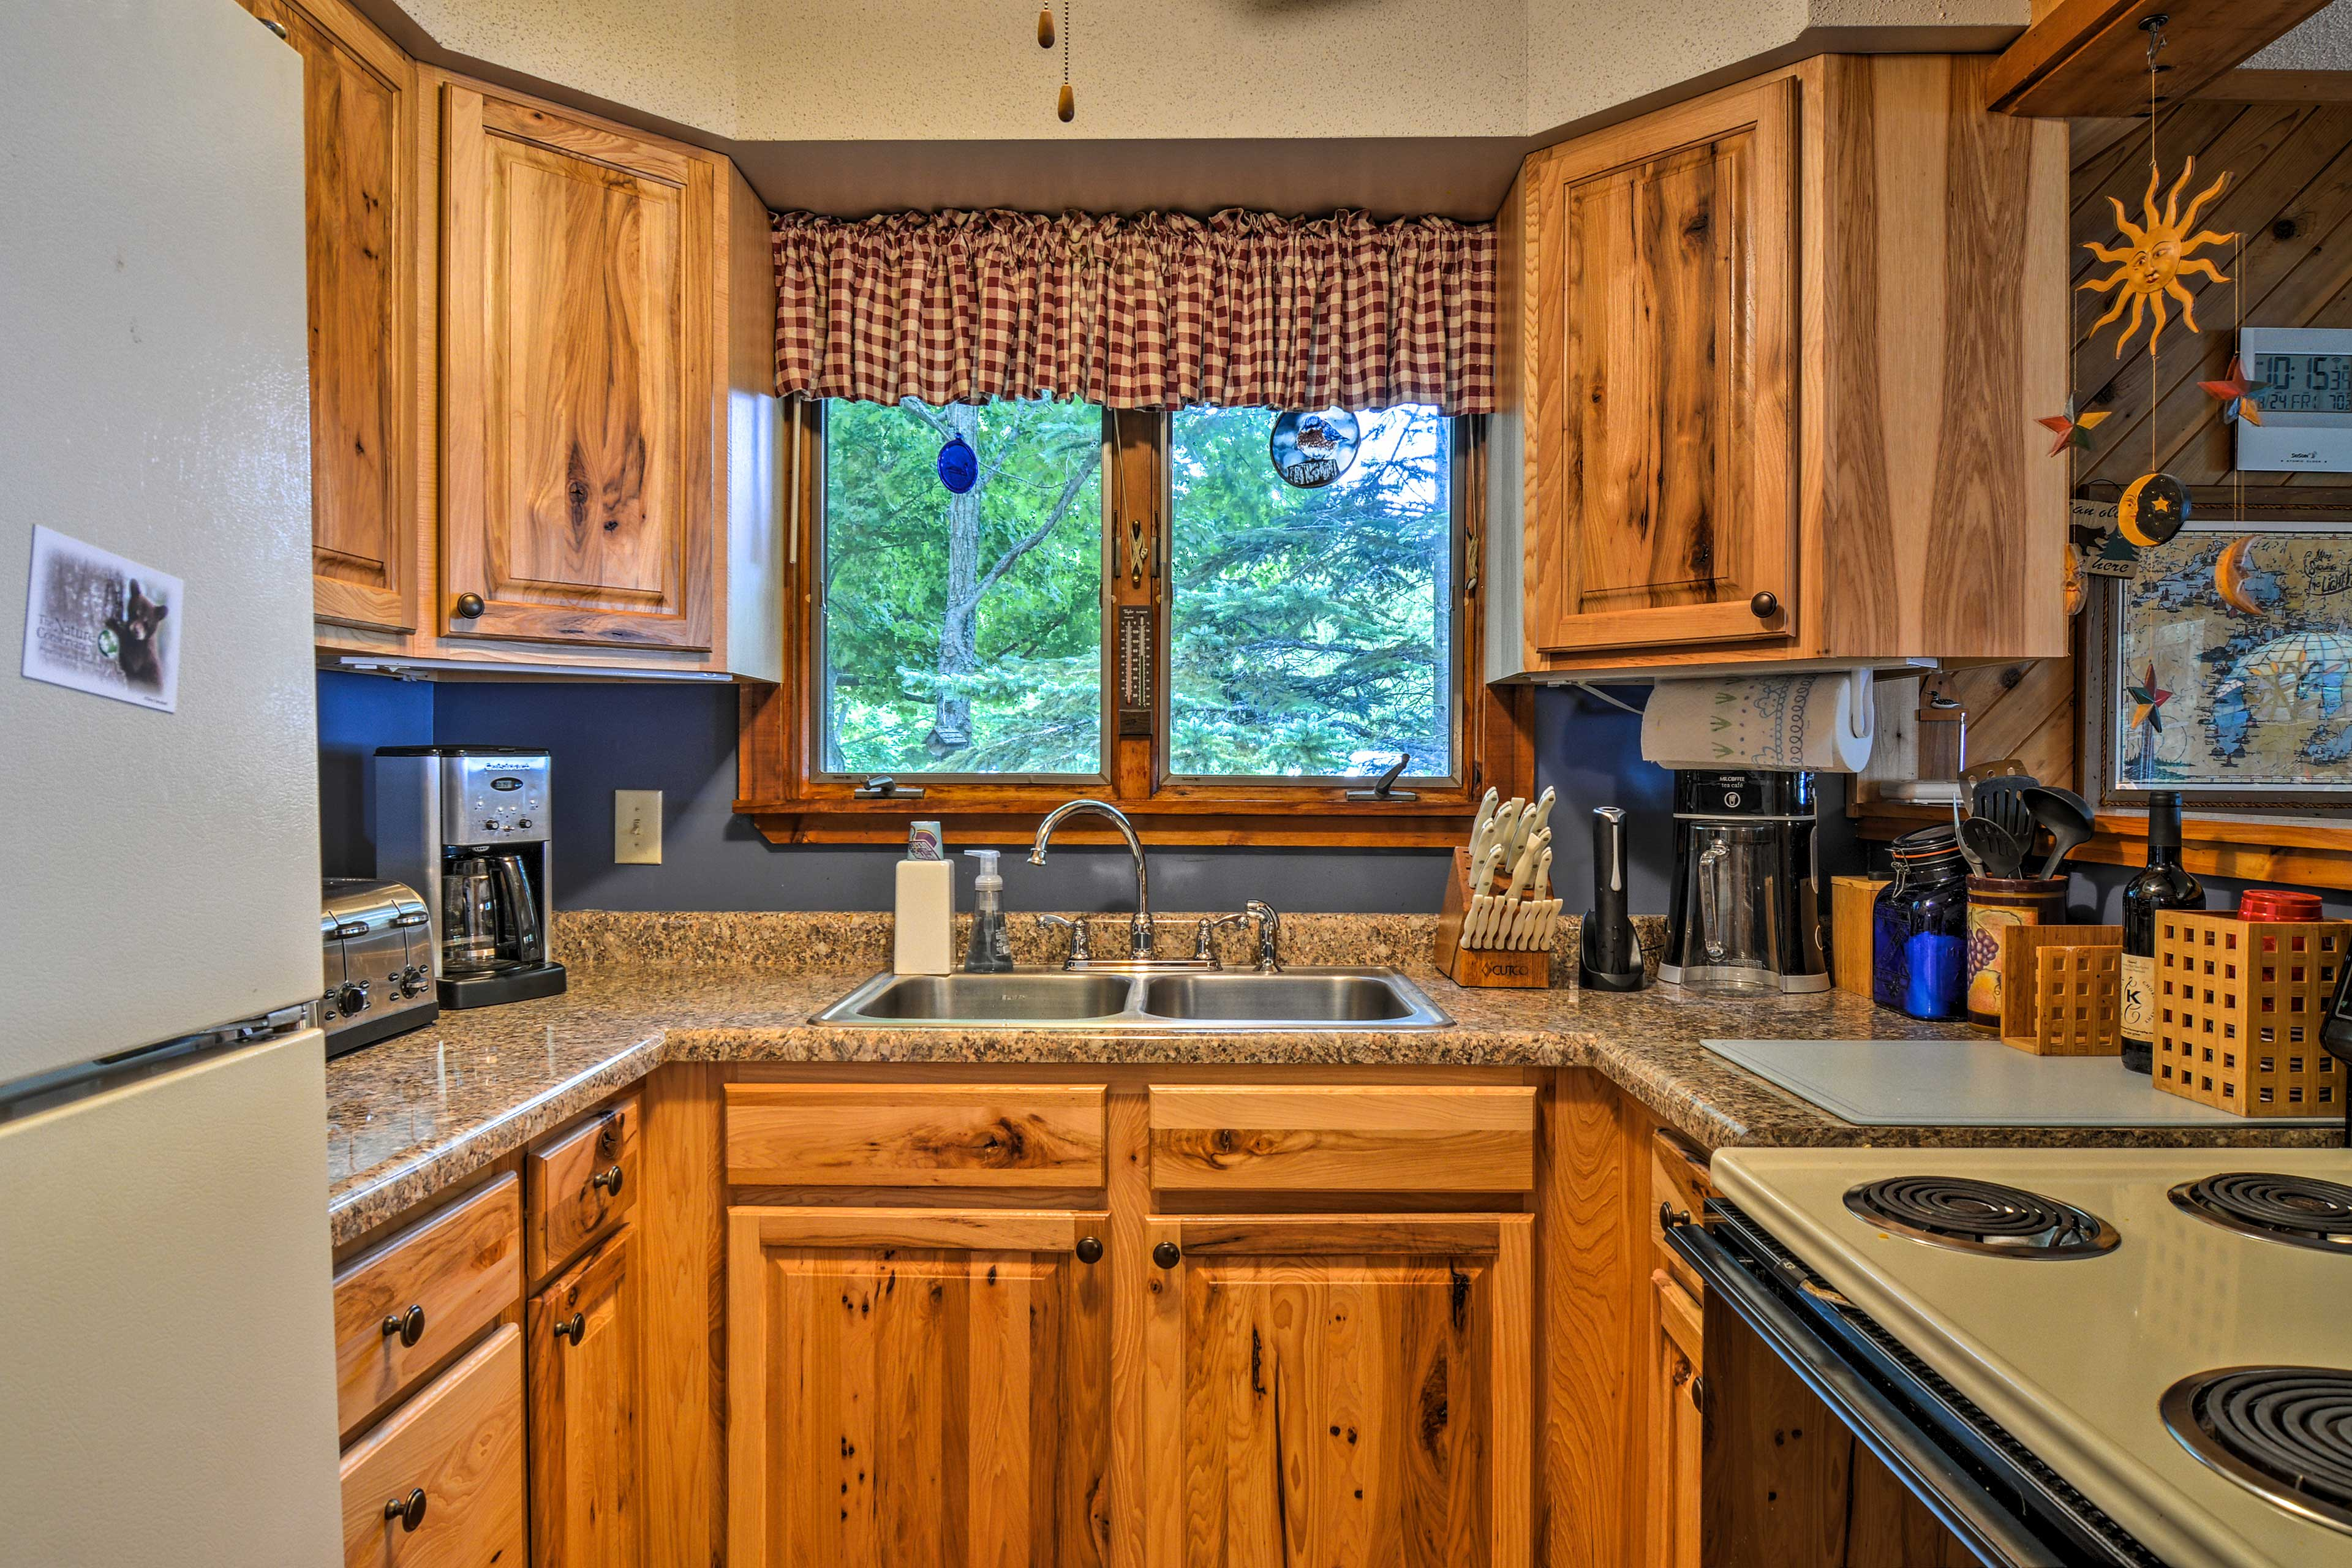 The well-equipped kitchen boasts wraparound counters.